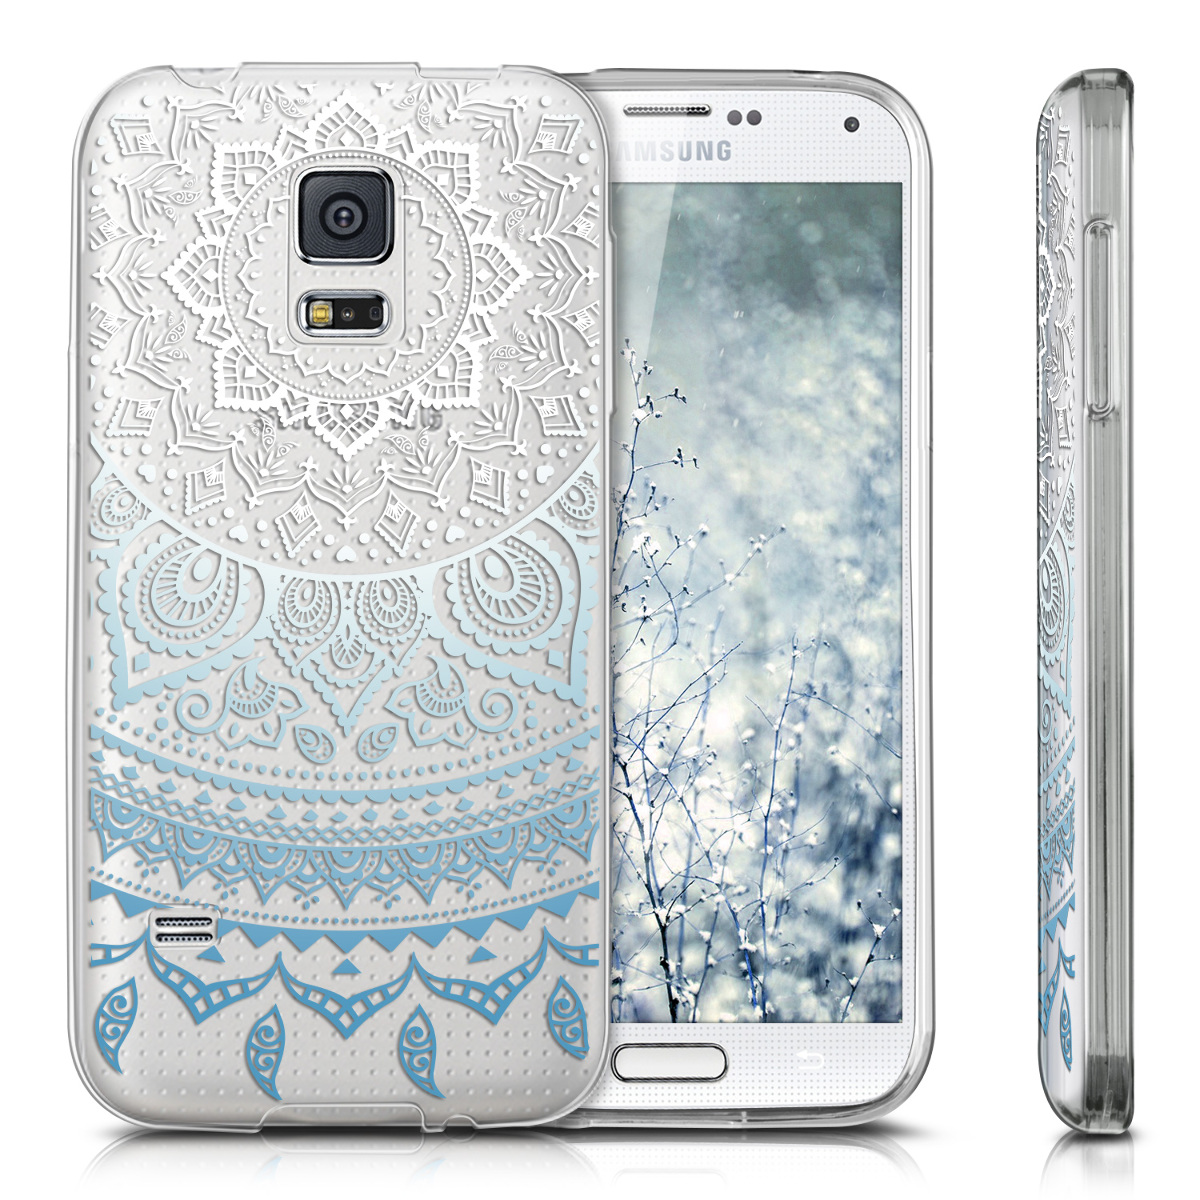 handyh lle f r samsung galaxy s5 mini h lle handy case. Black Bedroom Furniture Sets. Home Design Ideas